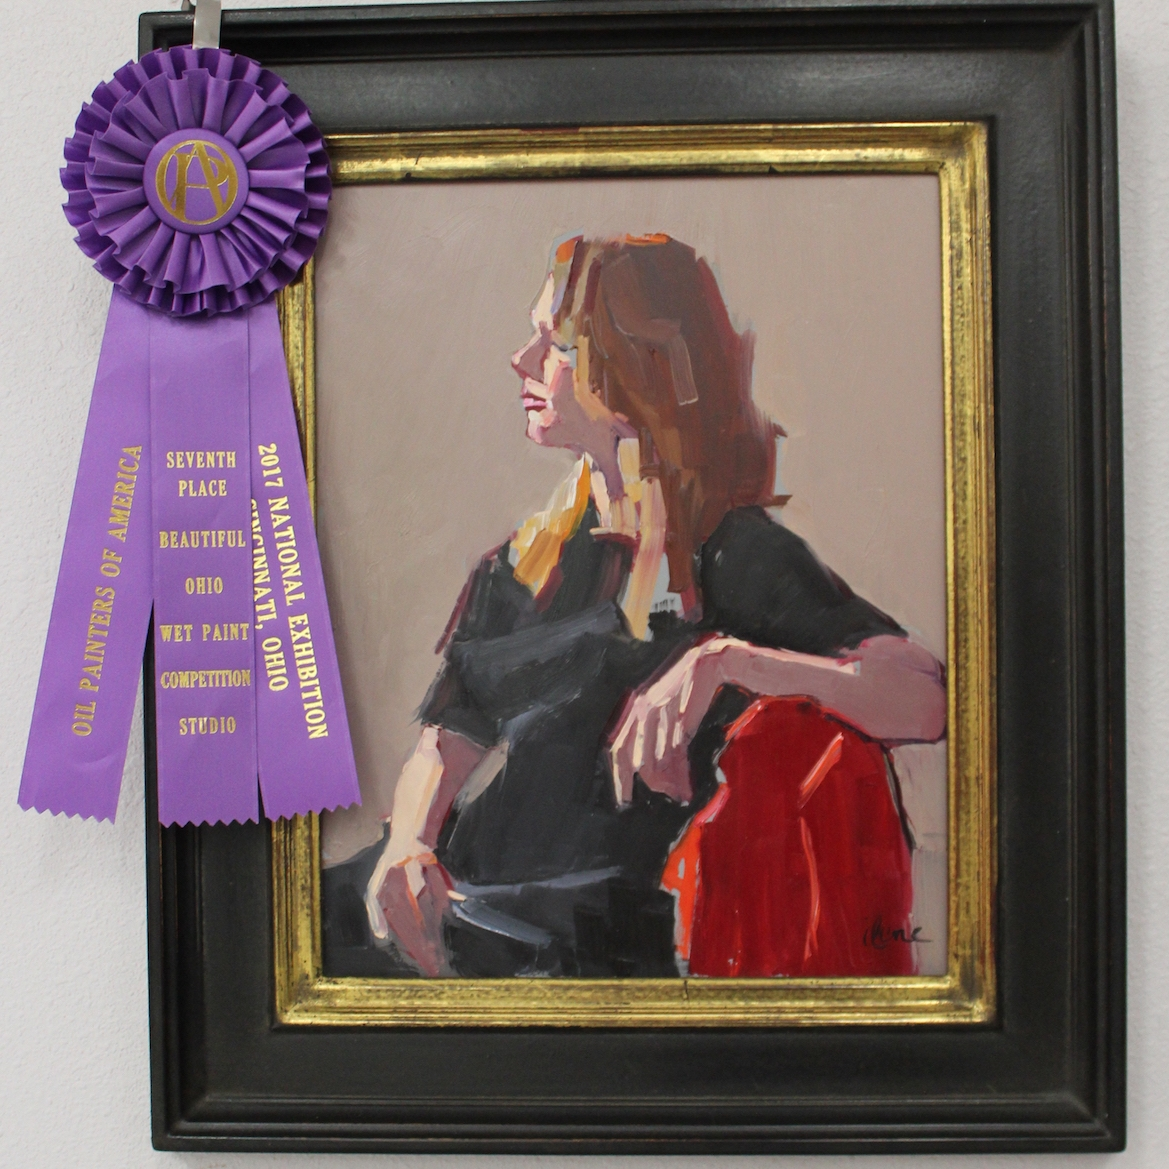 12x9 - 7th place in Oil Painters of America's 26th National Exhibition Wet Paint Competition/Studio Division